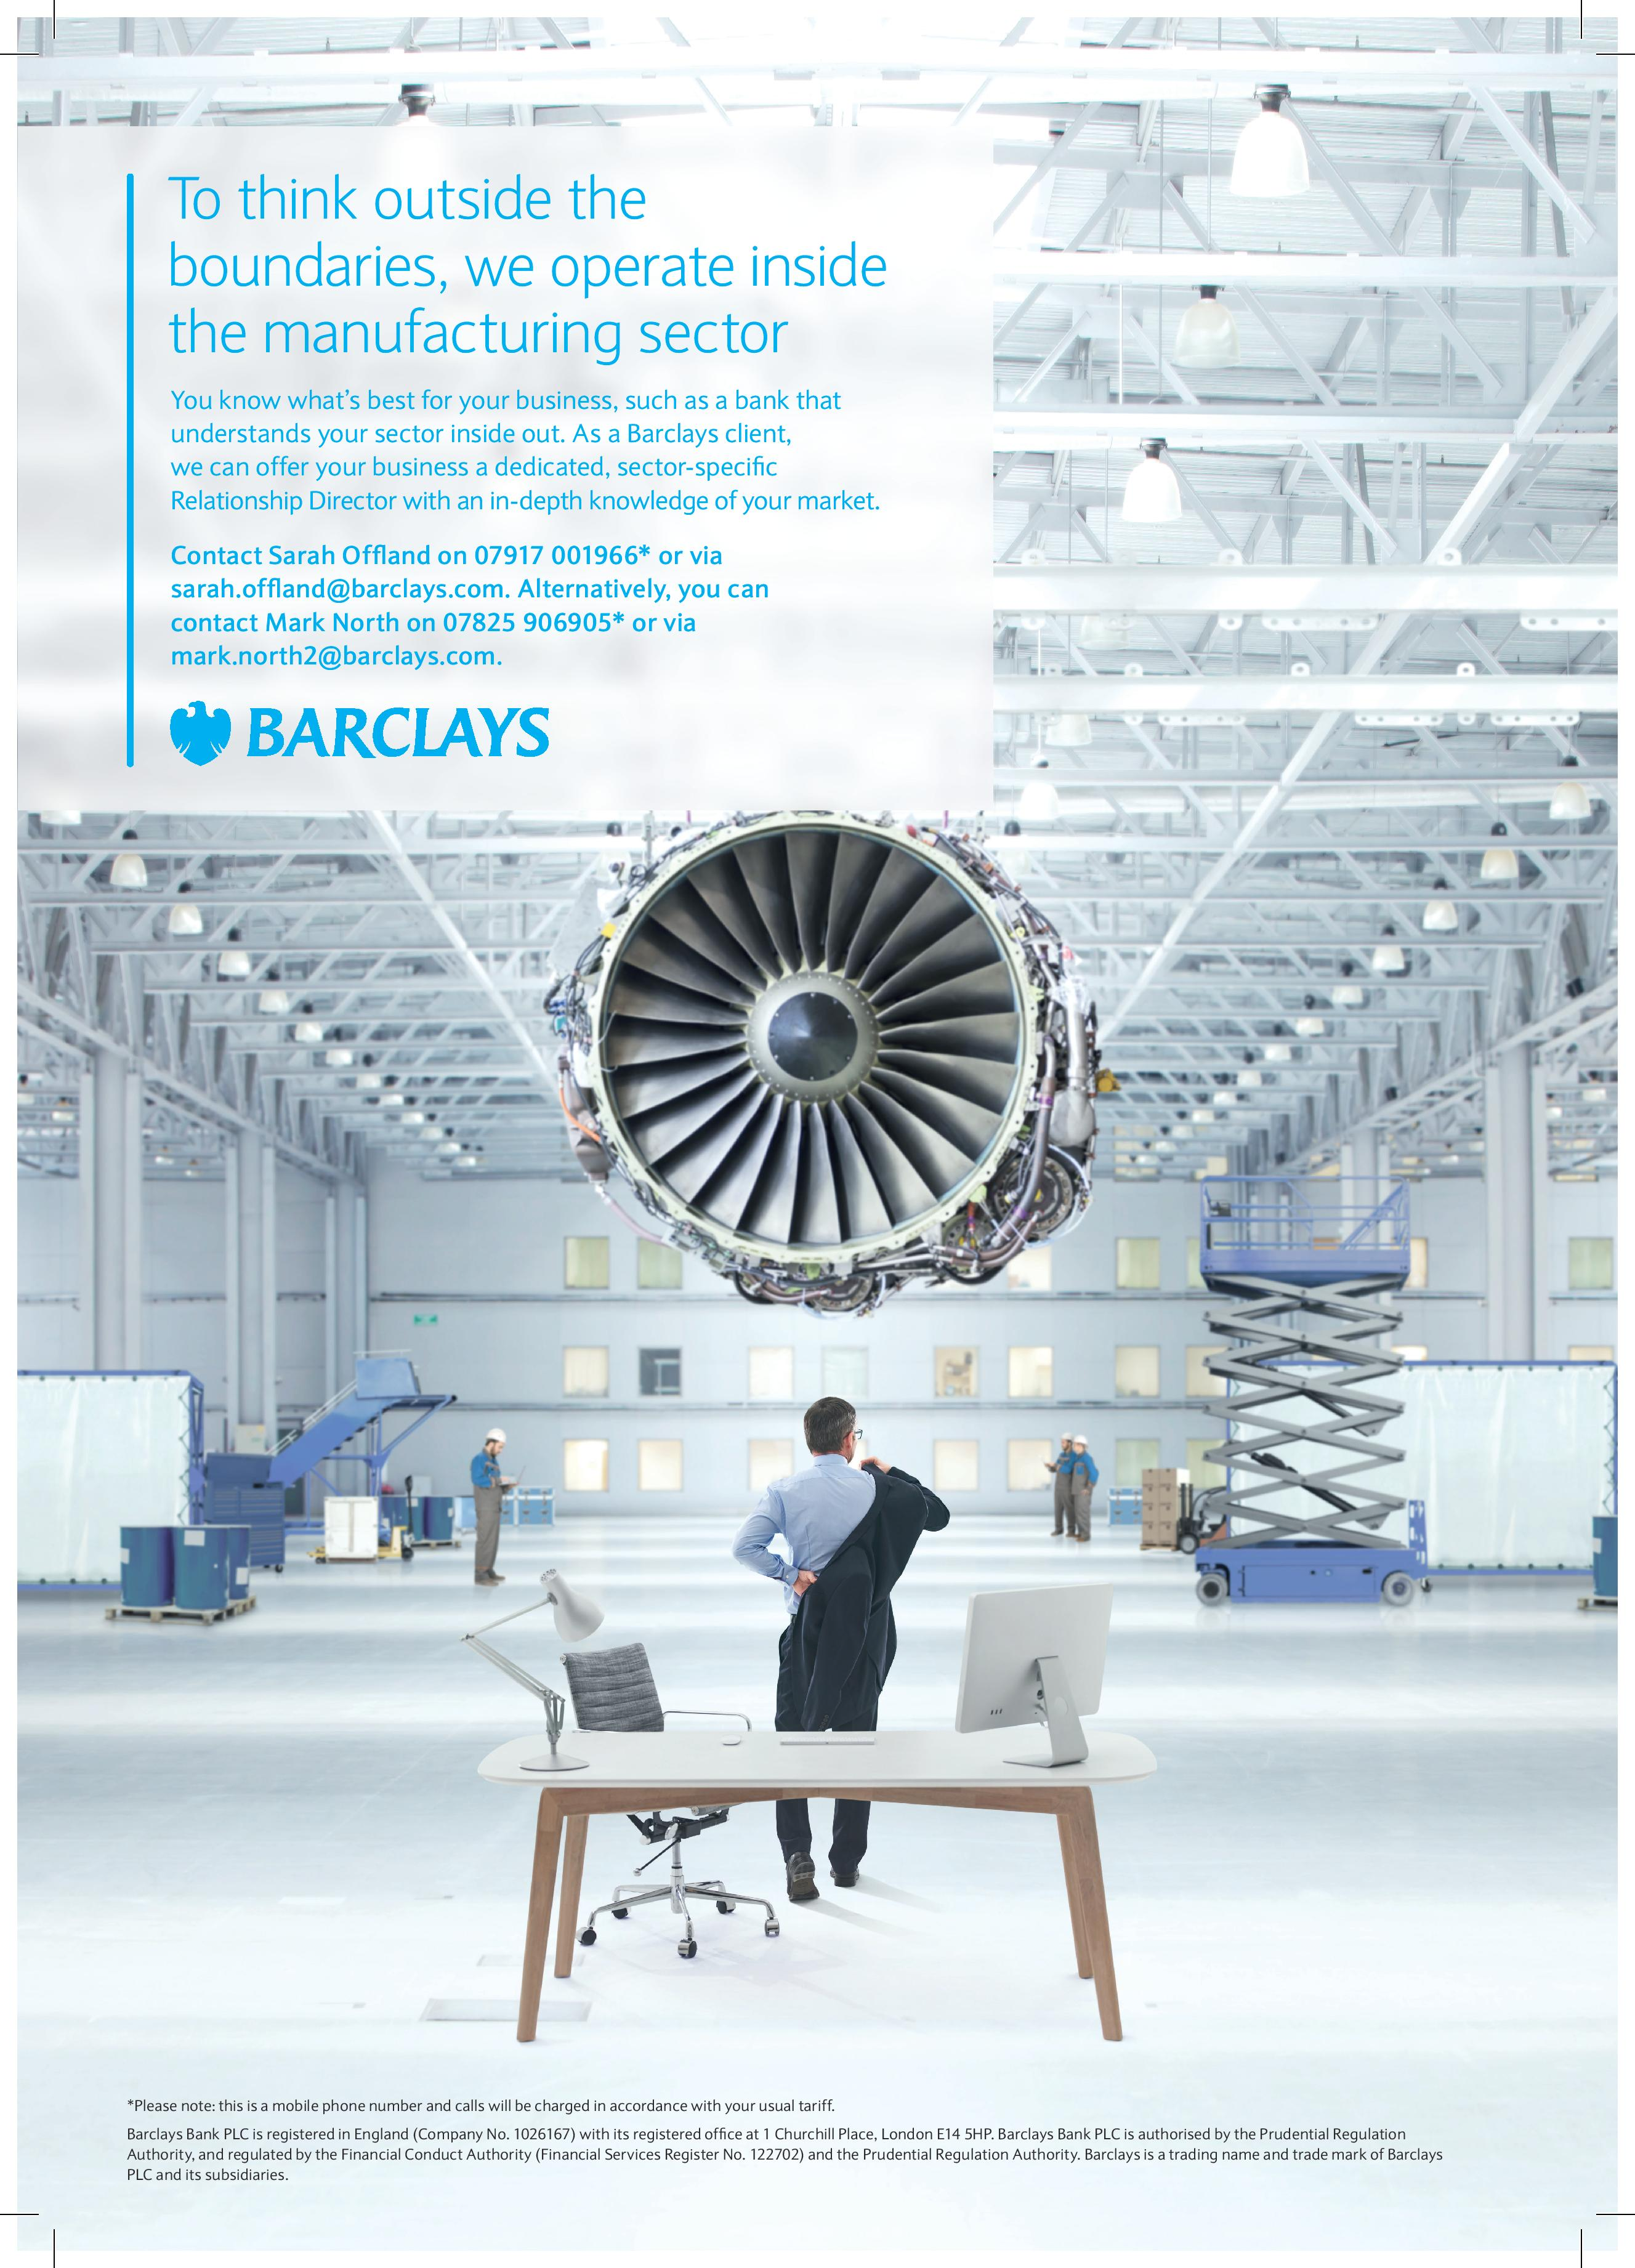 https://www.barclays.co.uk/businessbanking